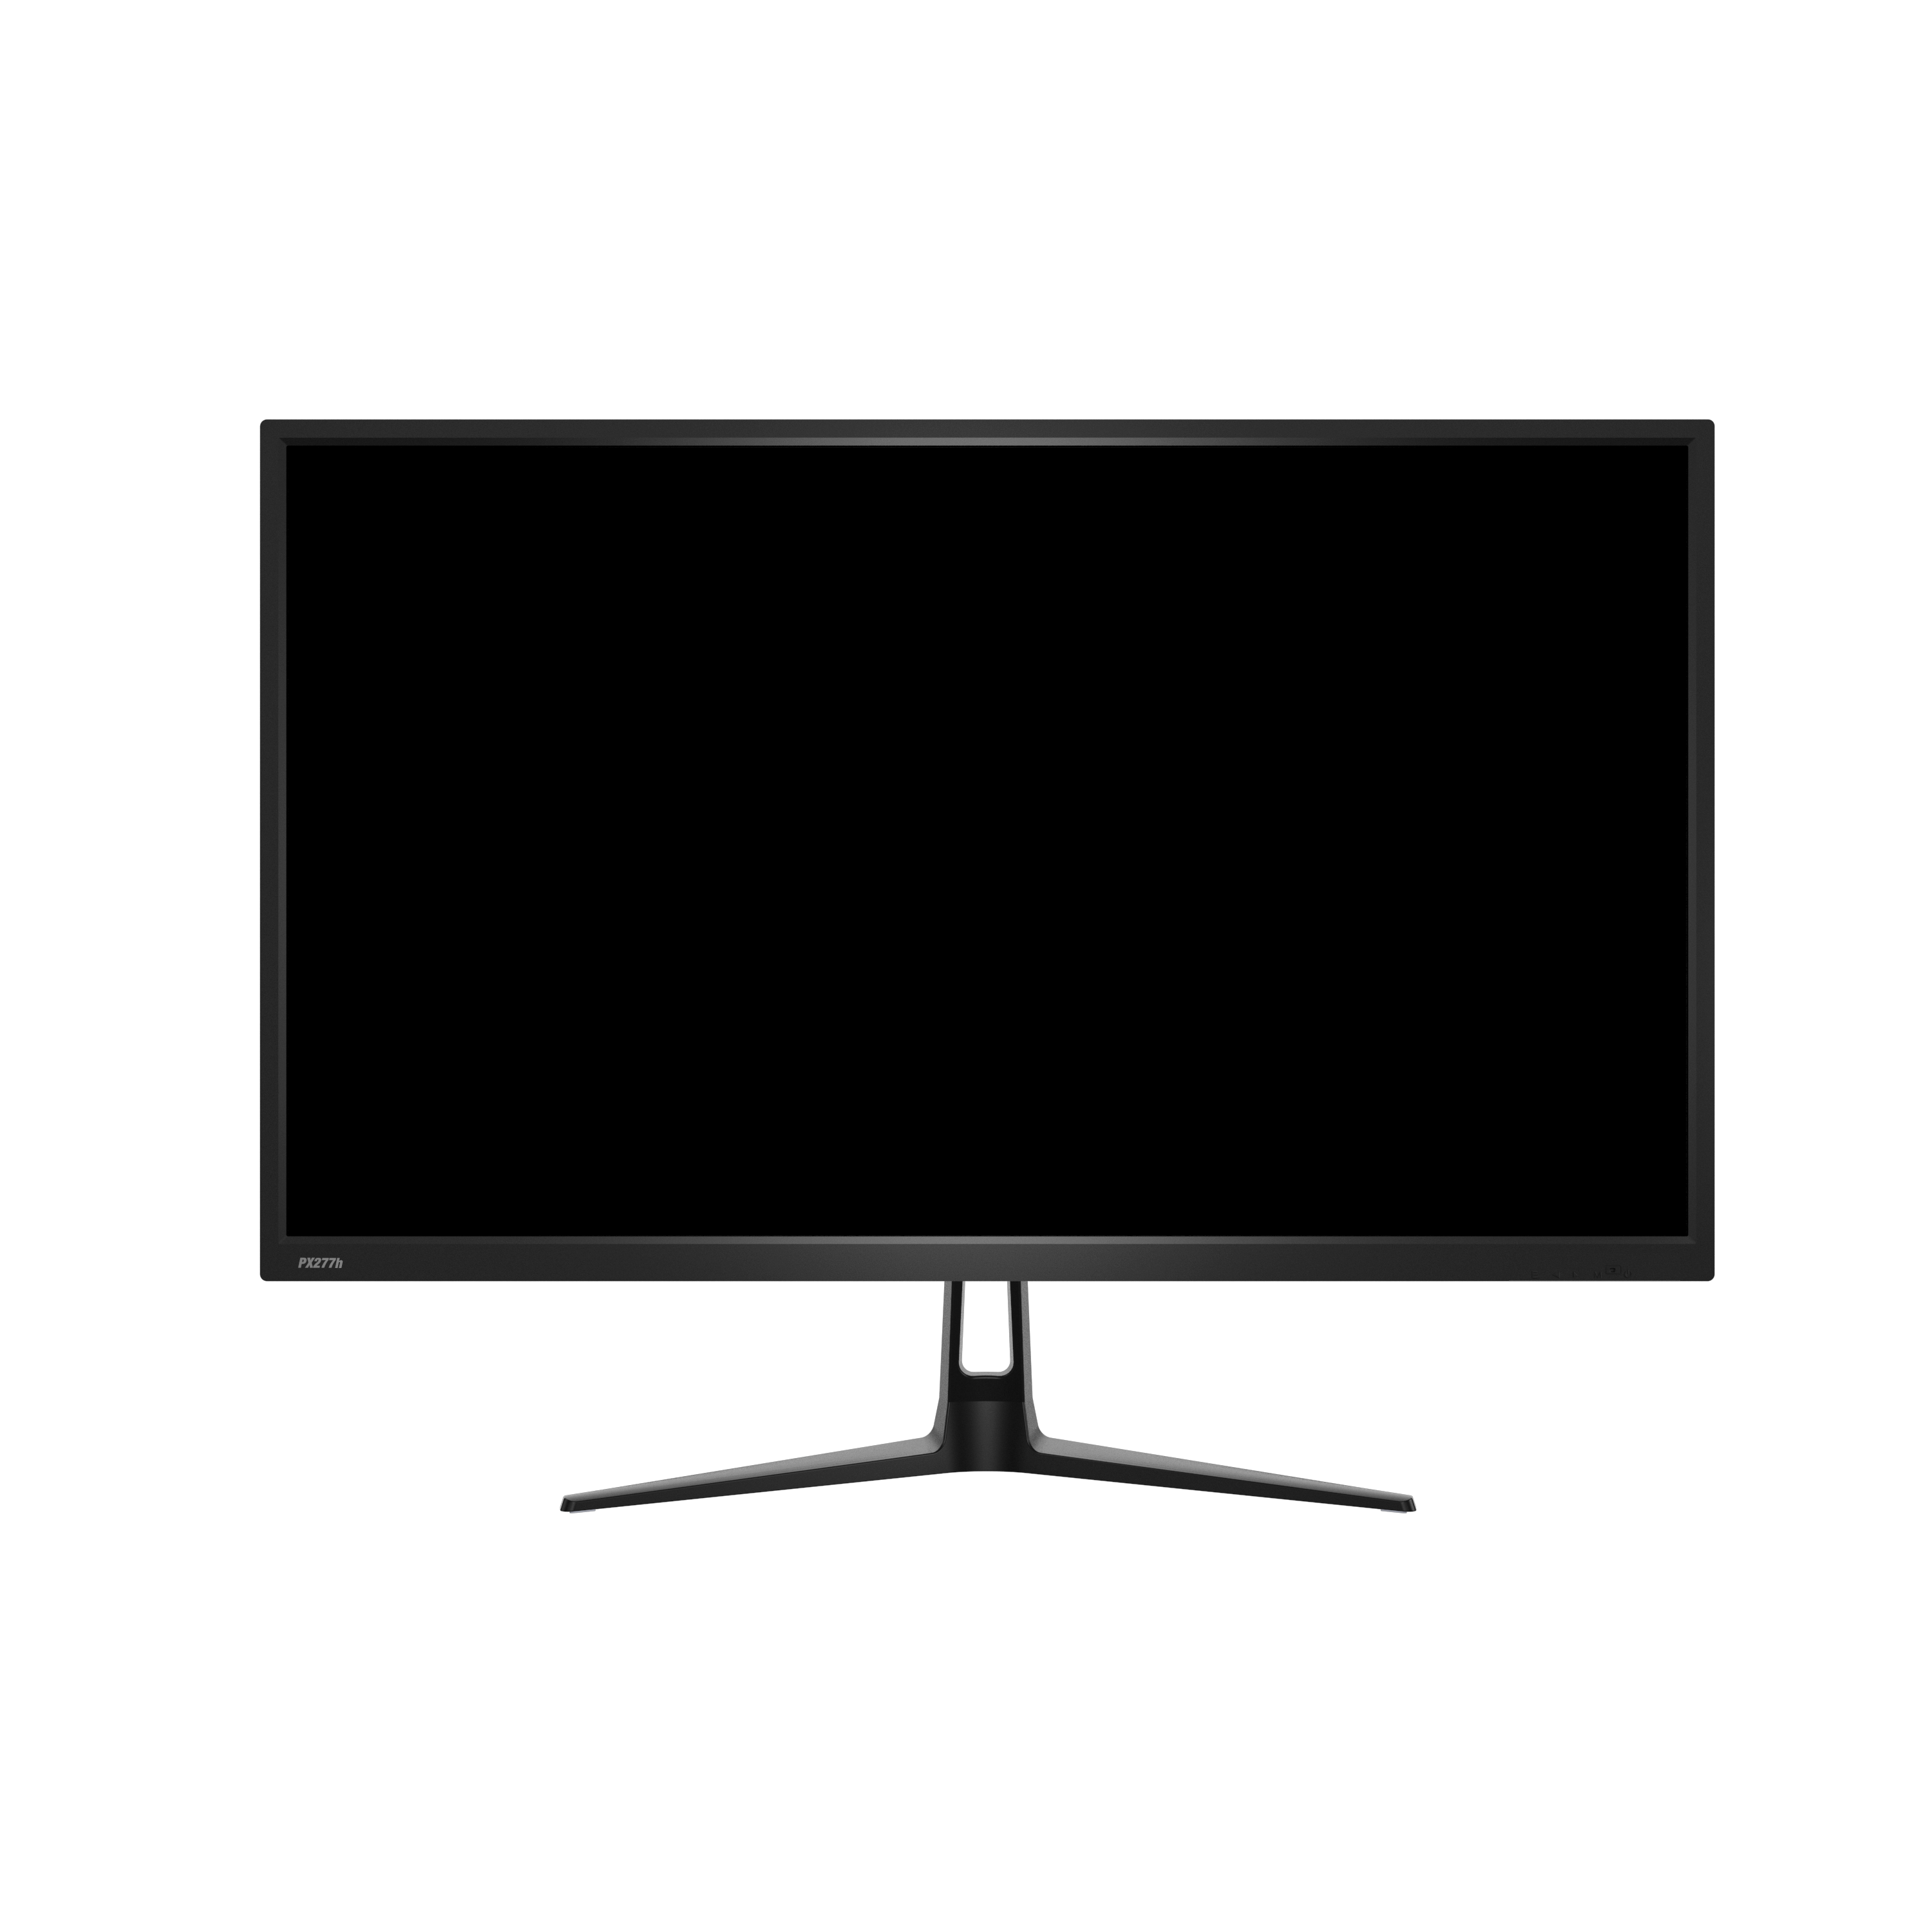 Pixio-PX277h-gaming-monitor-qhd-image-003